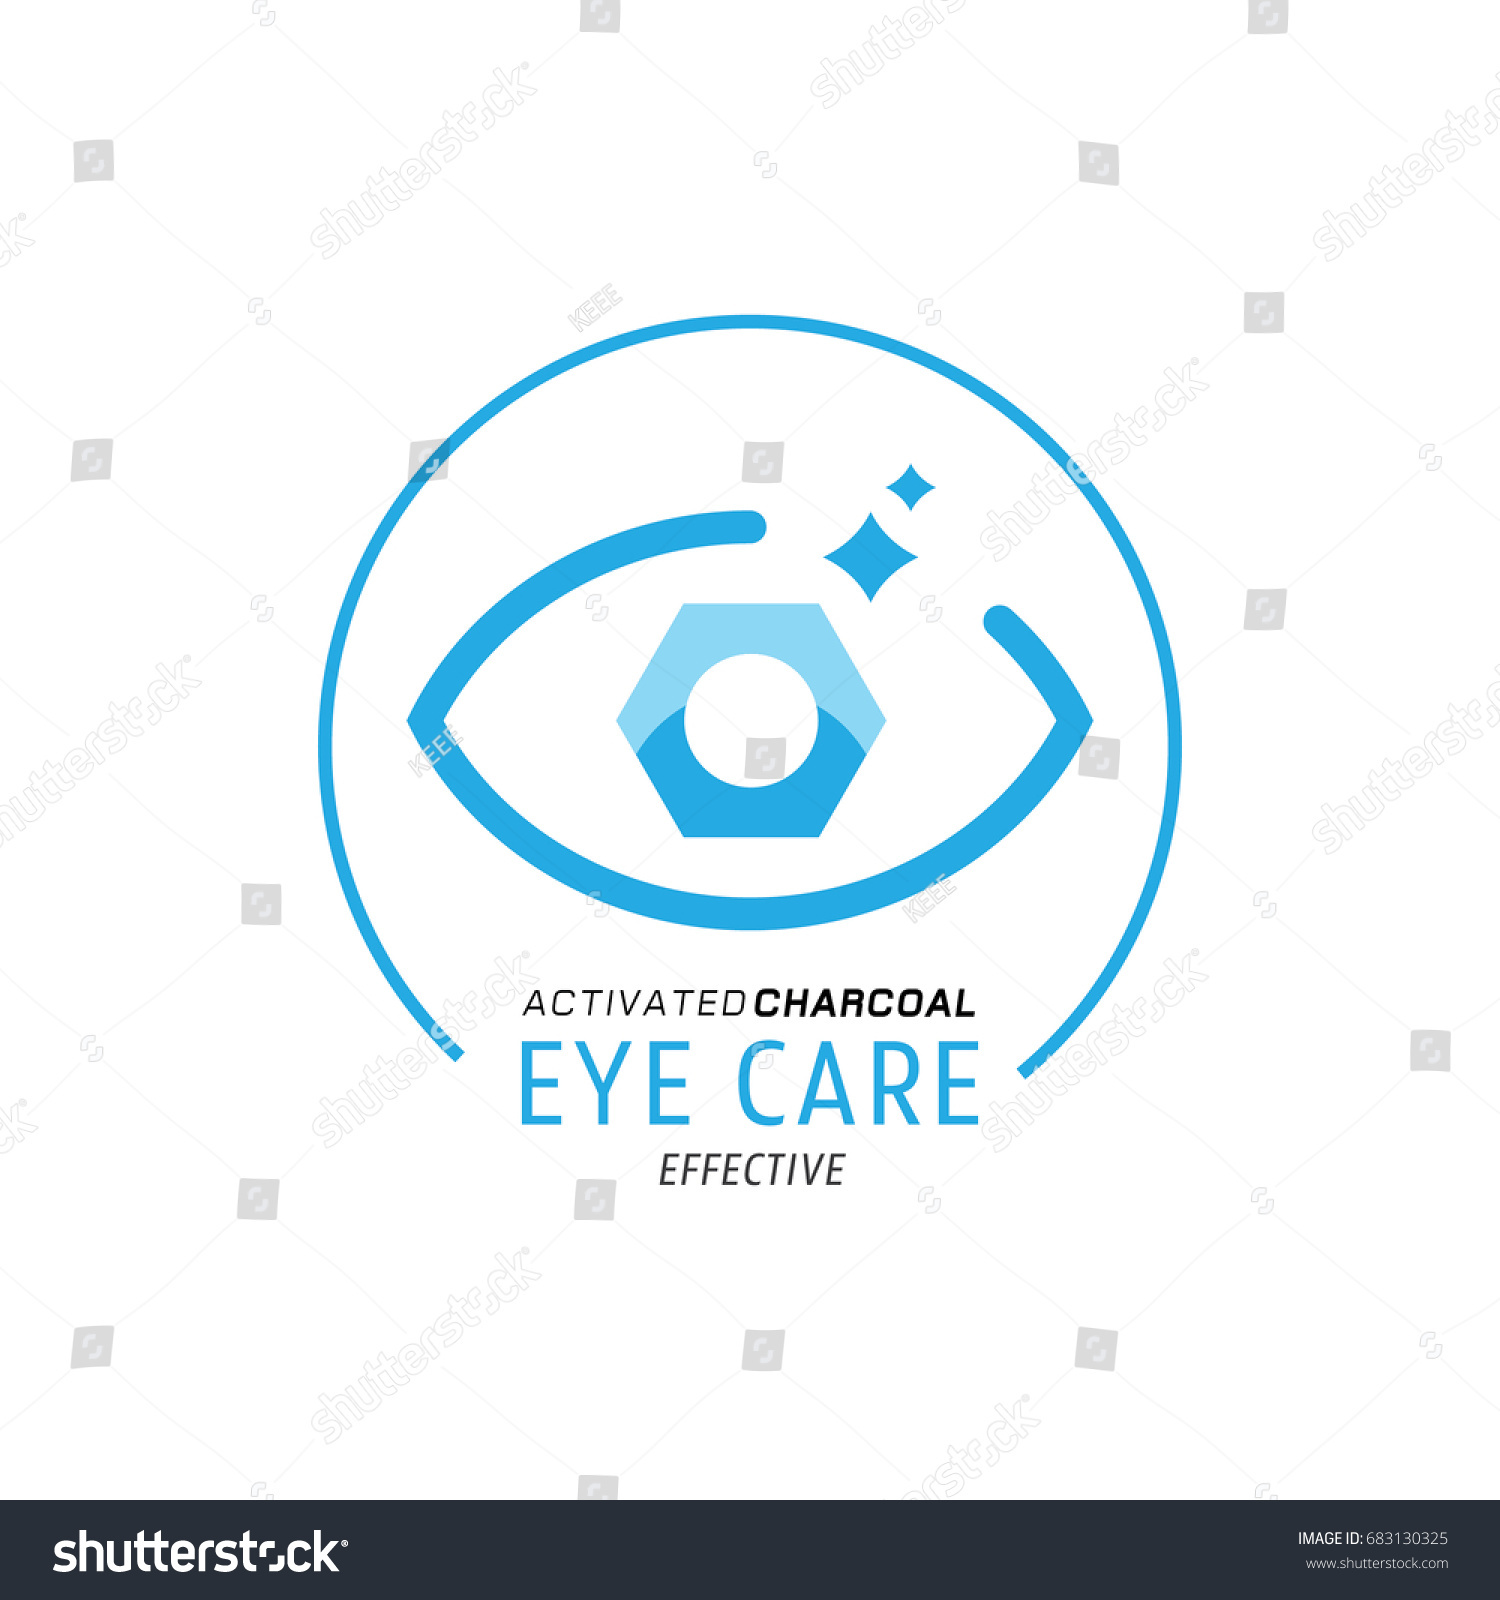 benefit logo. eye care logo design benefit of activated charcoal with hexagonal shaped